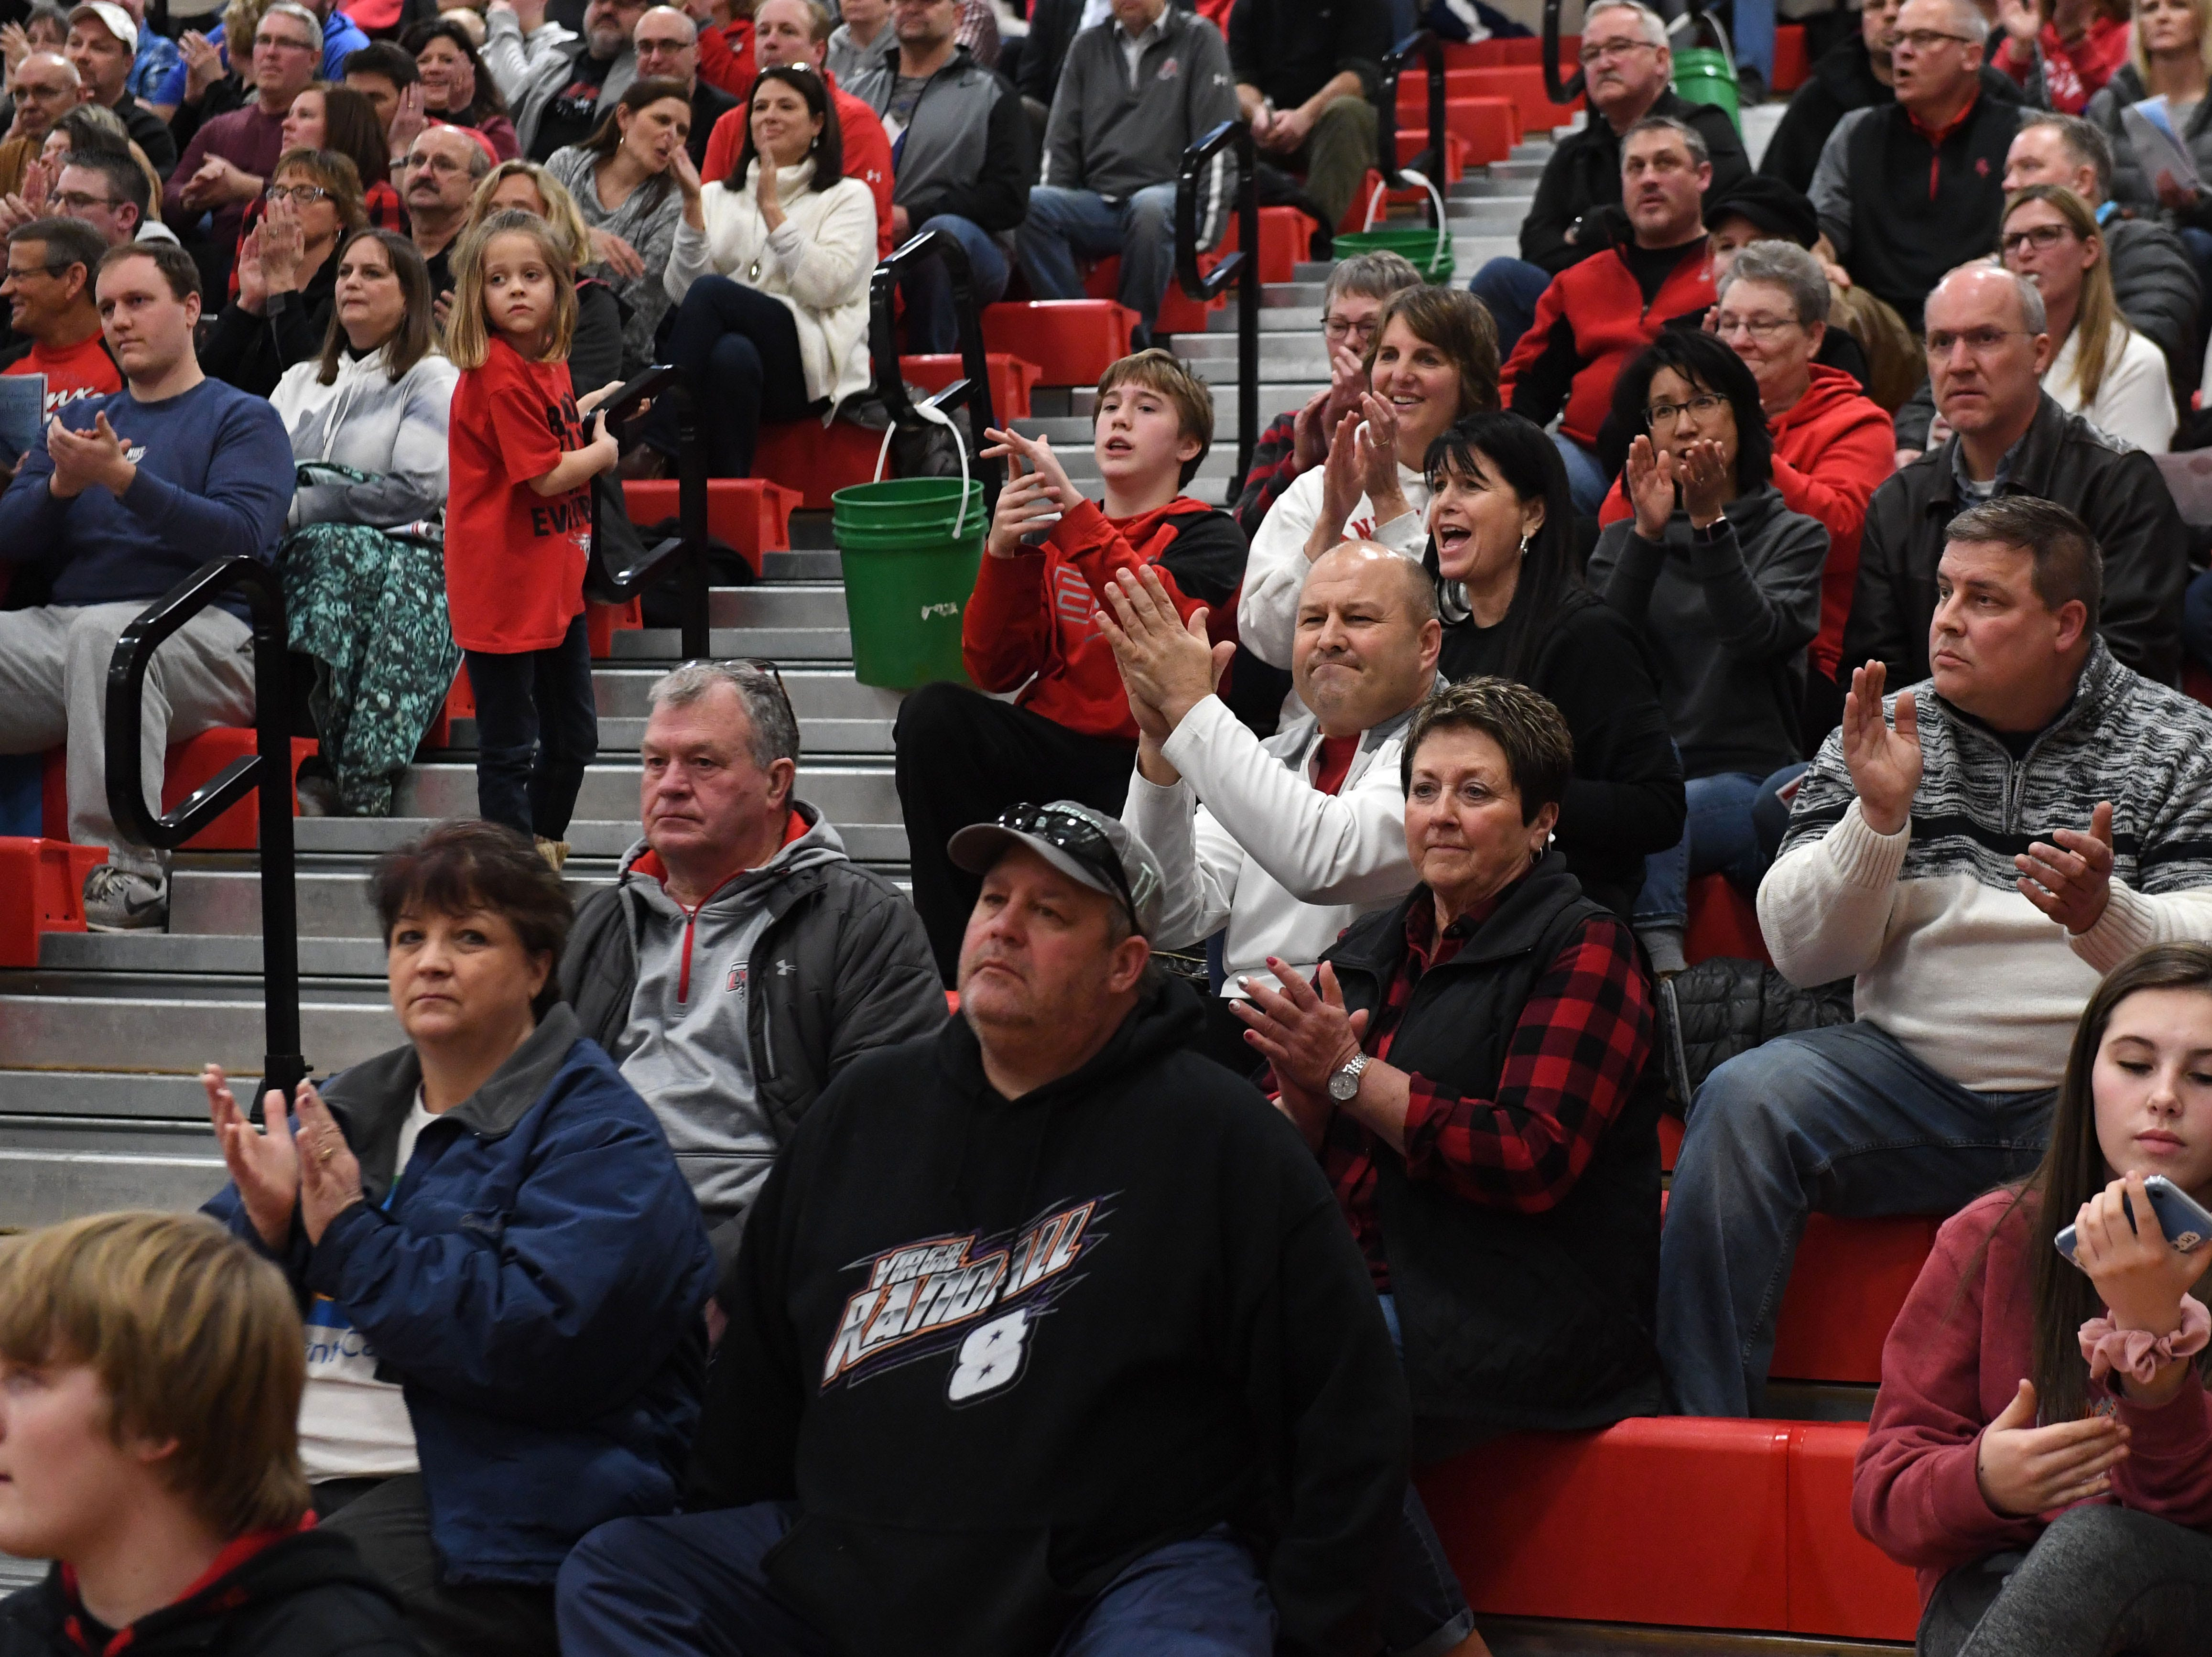 Audience reacts during the Lincoln and Brandon Valley game in Sioux Falls, S.D., Tuesday, Feb. 5, 2019.